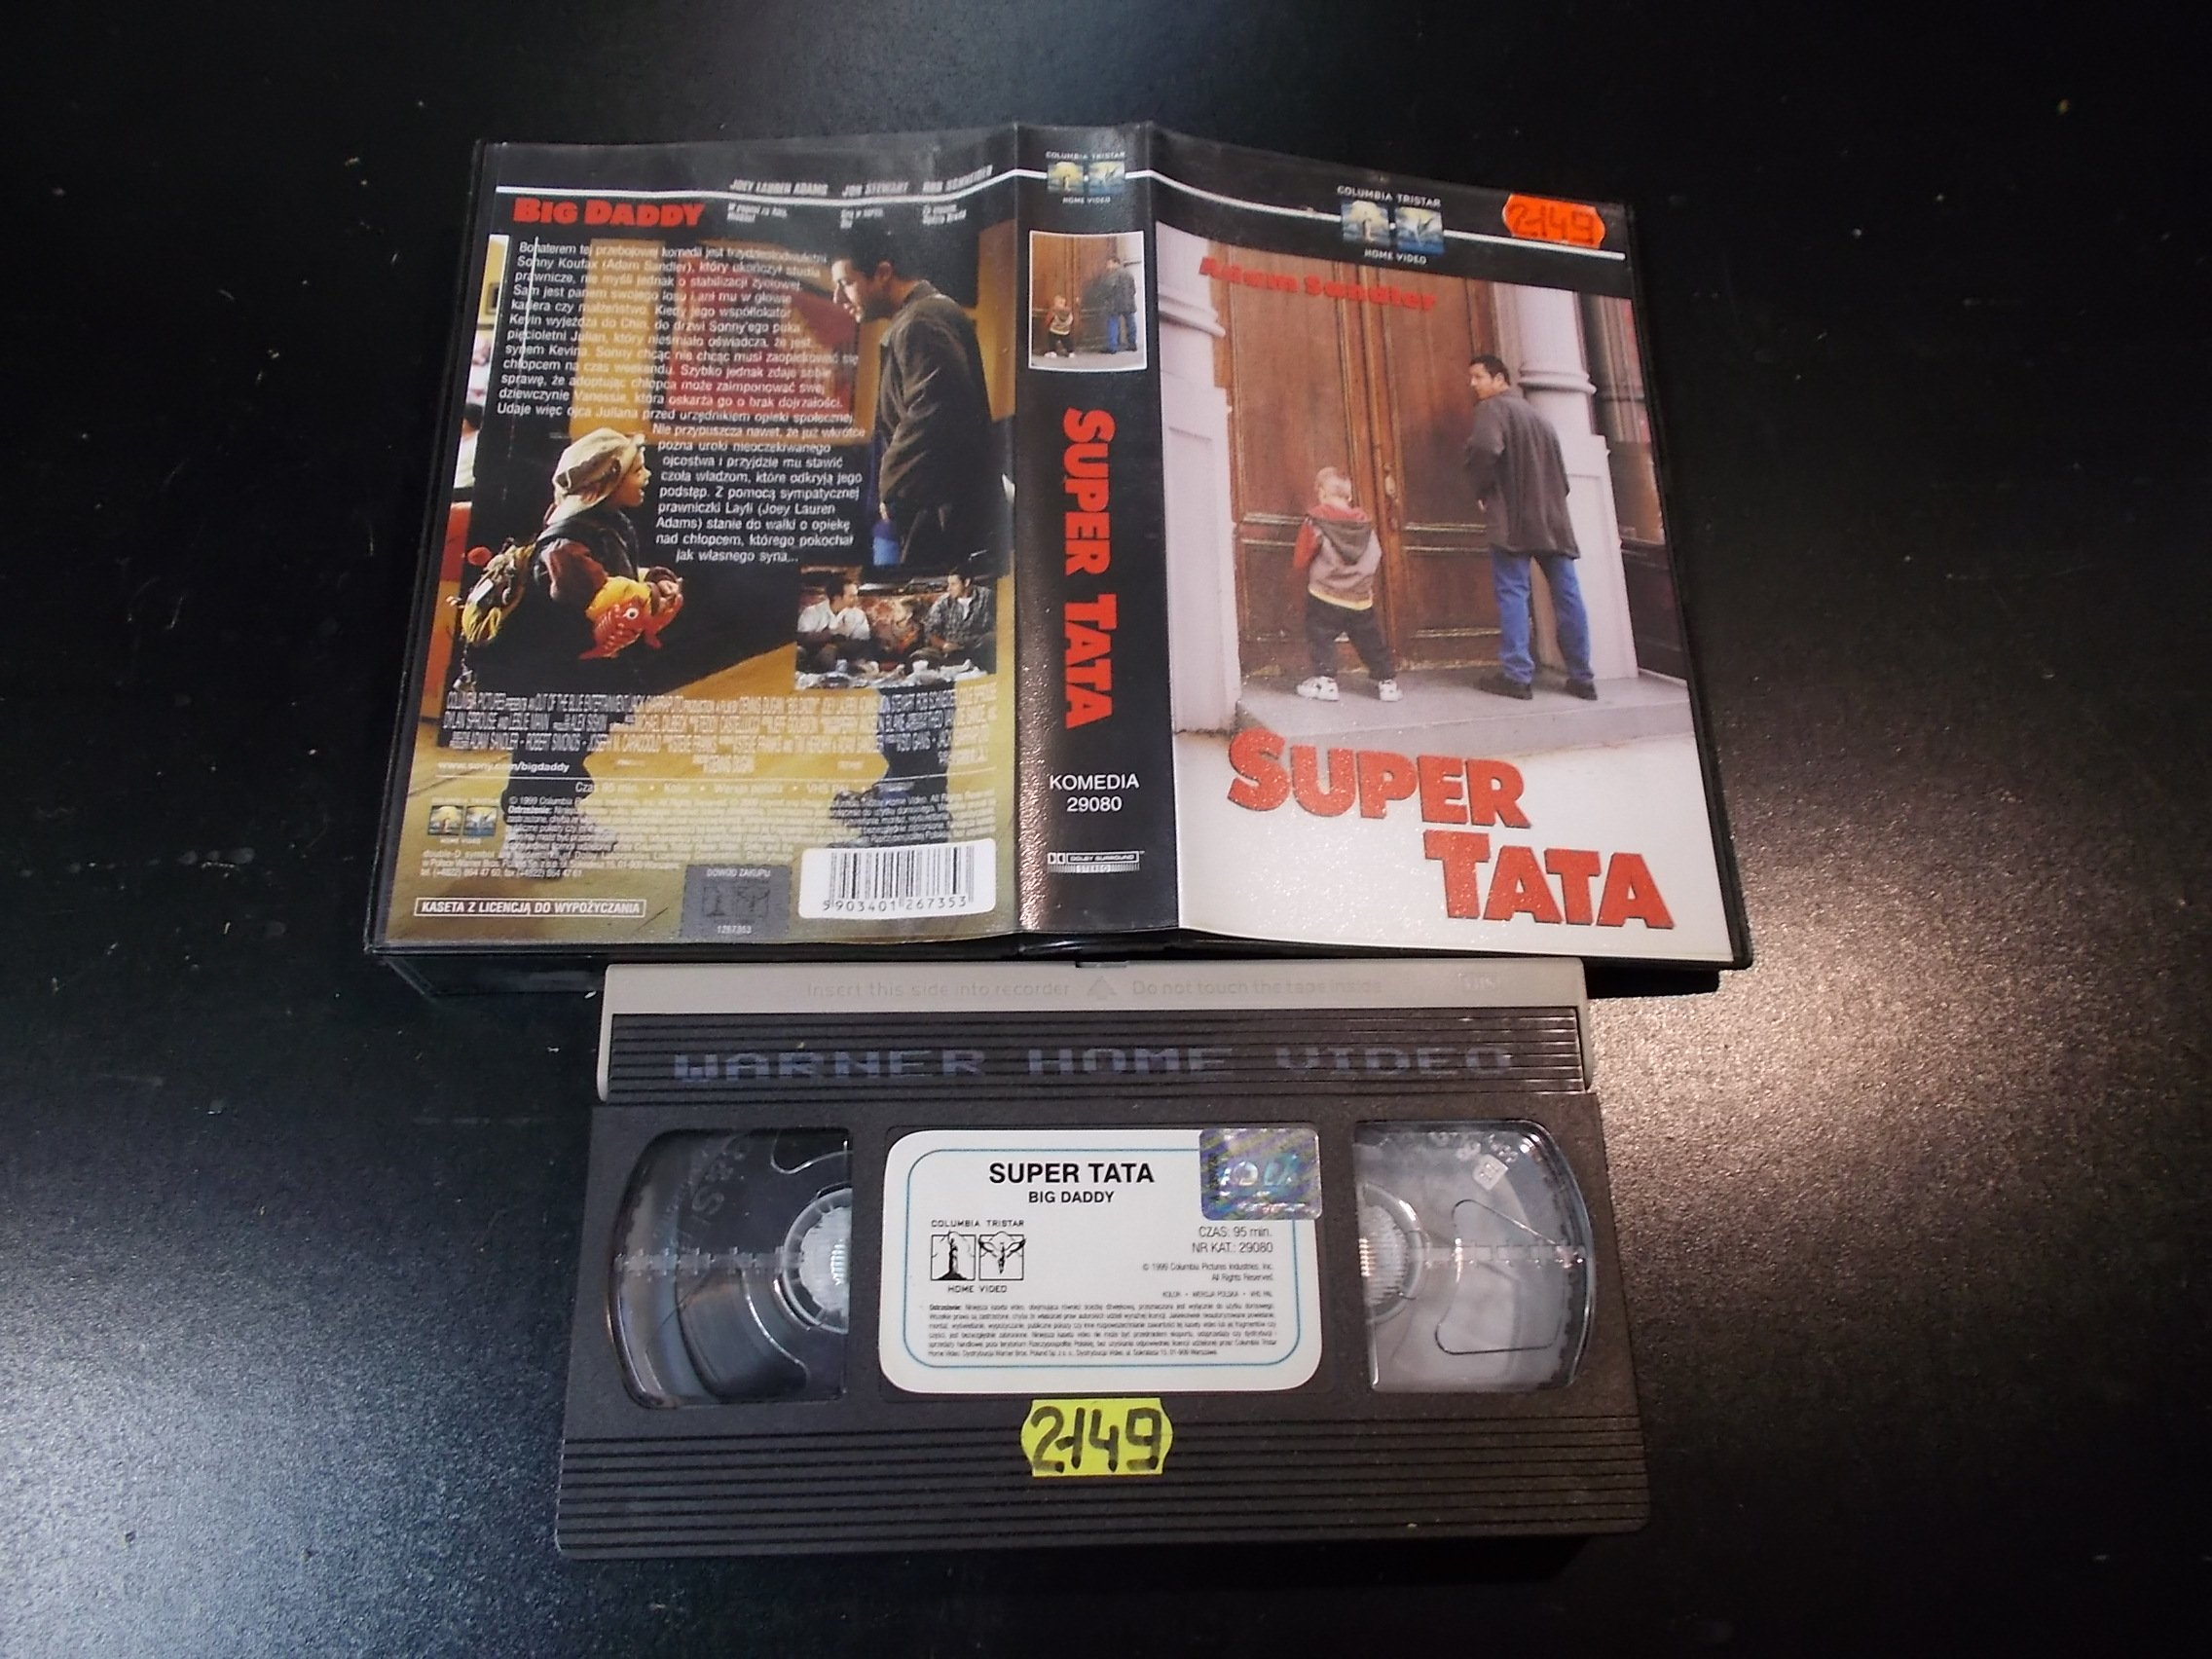 SUPER TATA - kaseta Video VHS - 1366 Sklep